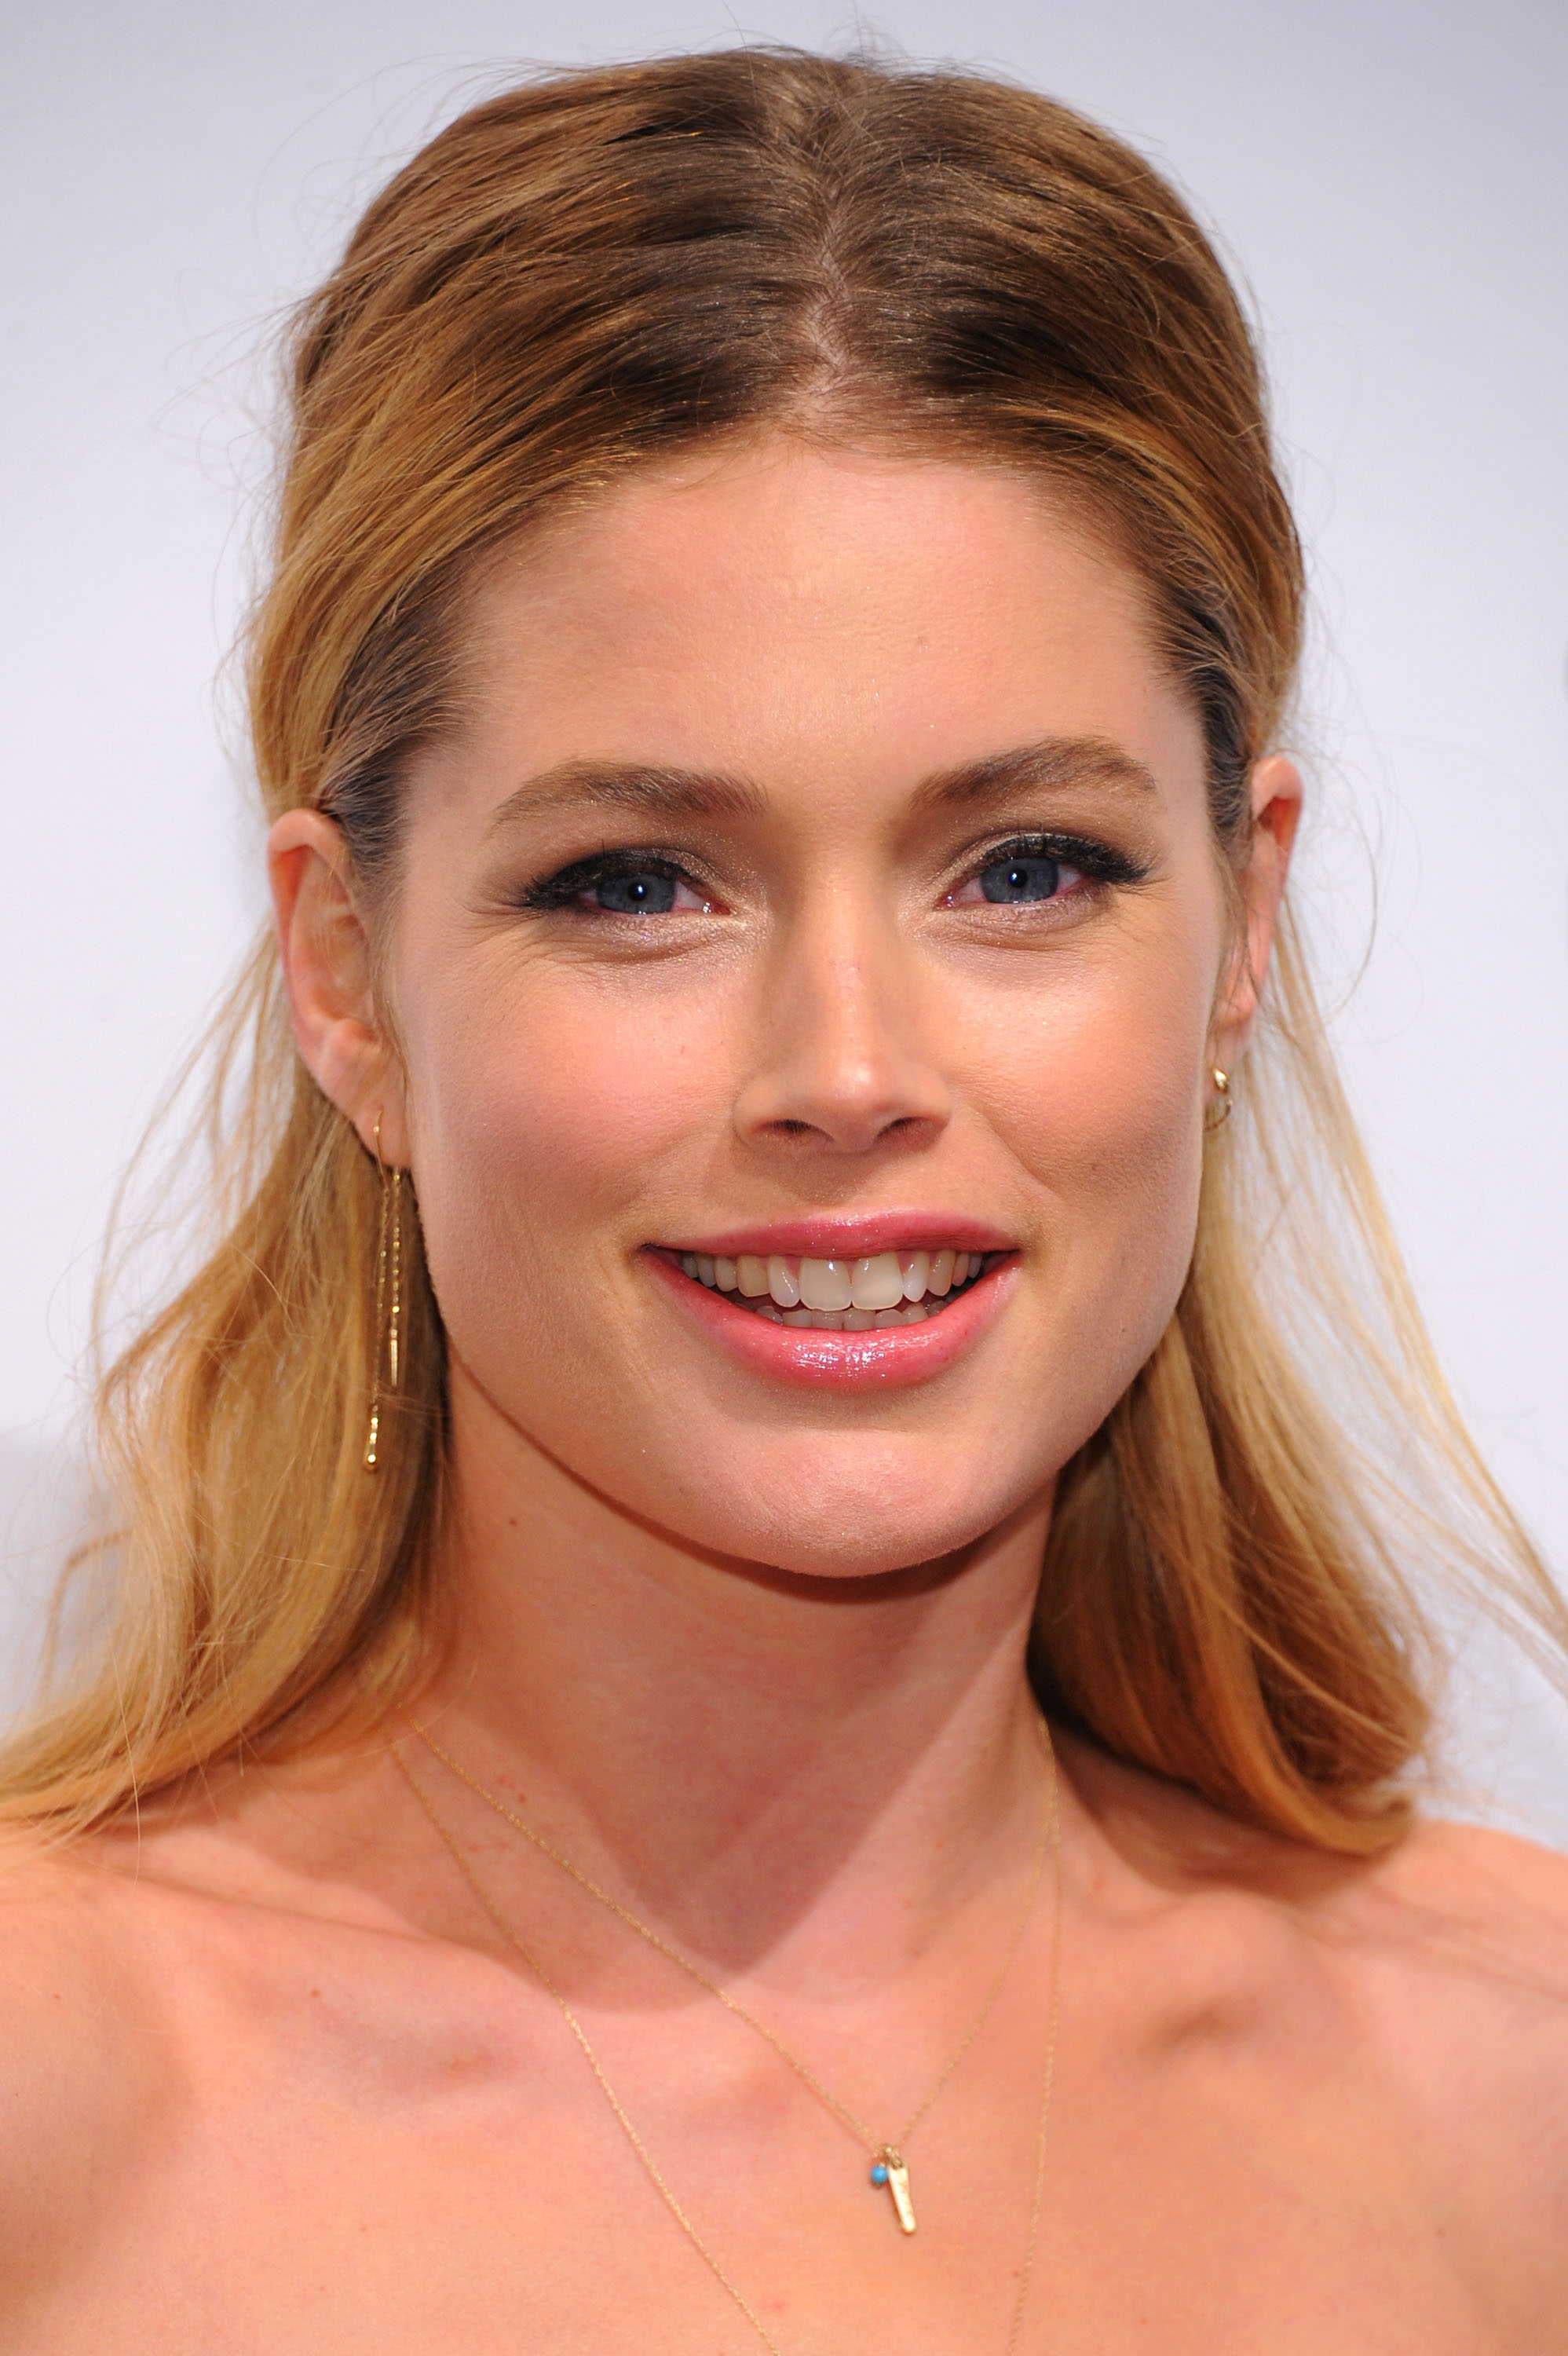 Doutzen Kroes Keep Up With The Beauty Savvy Celebrities